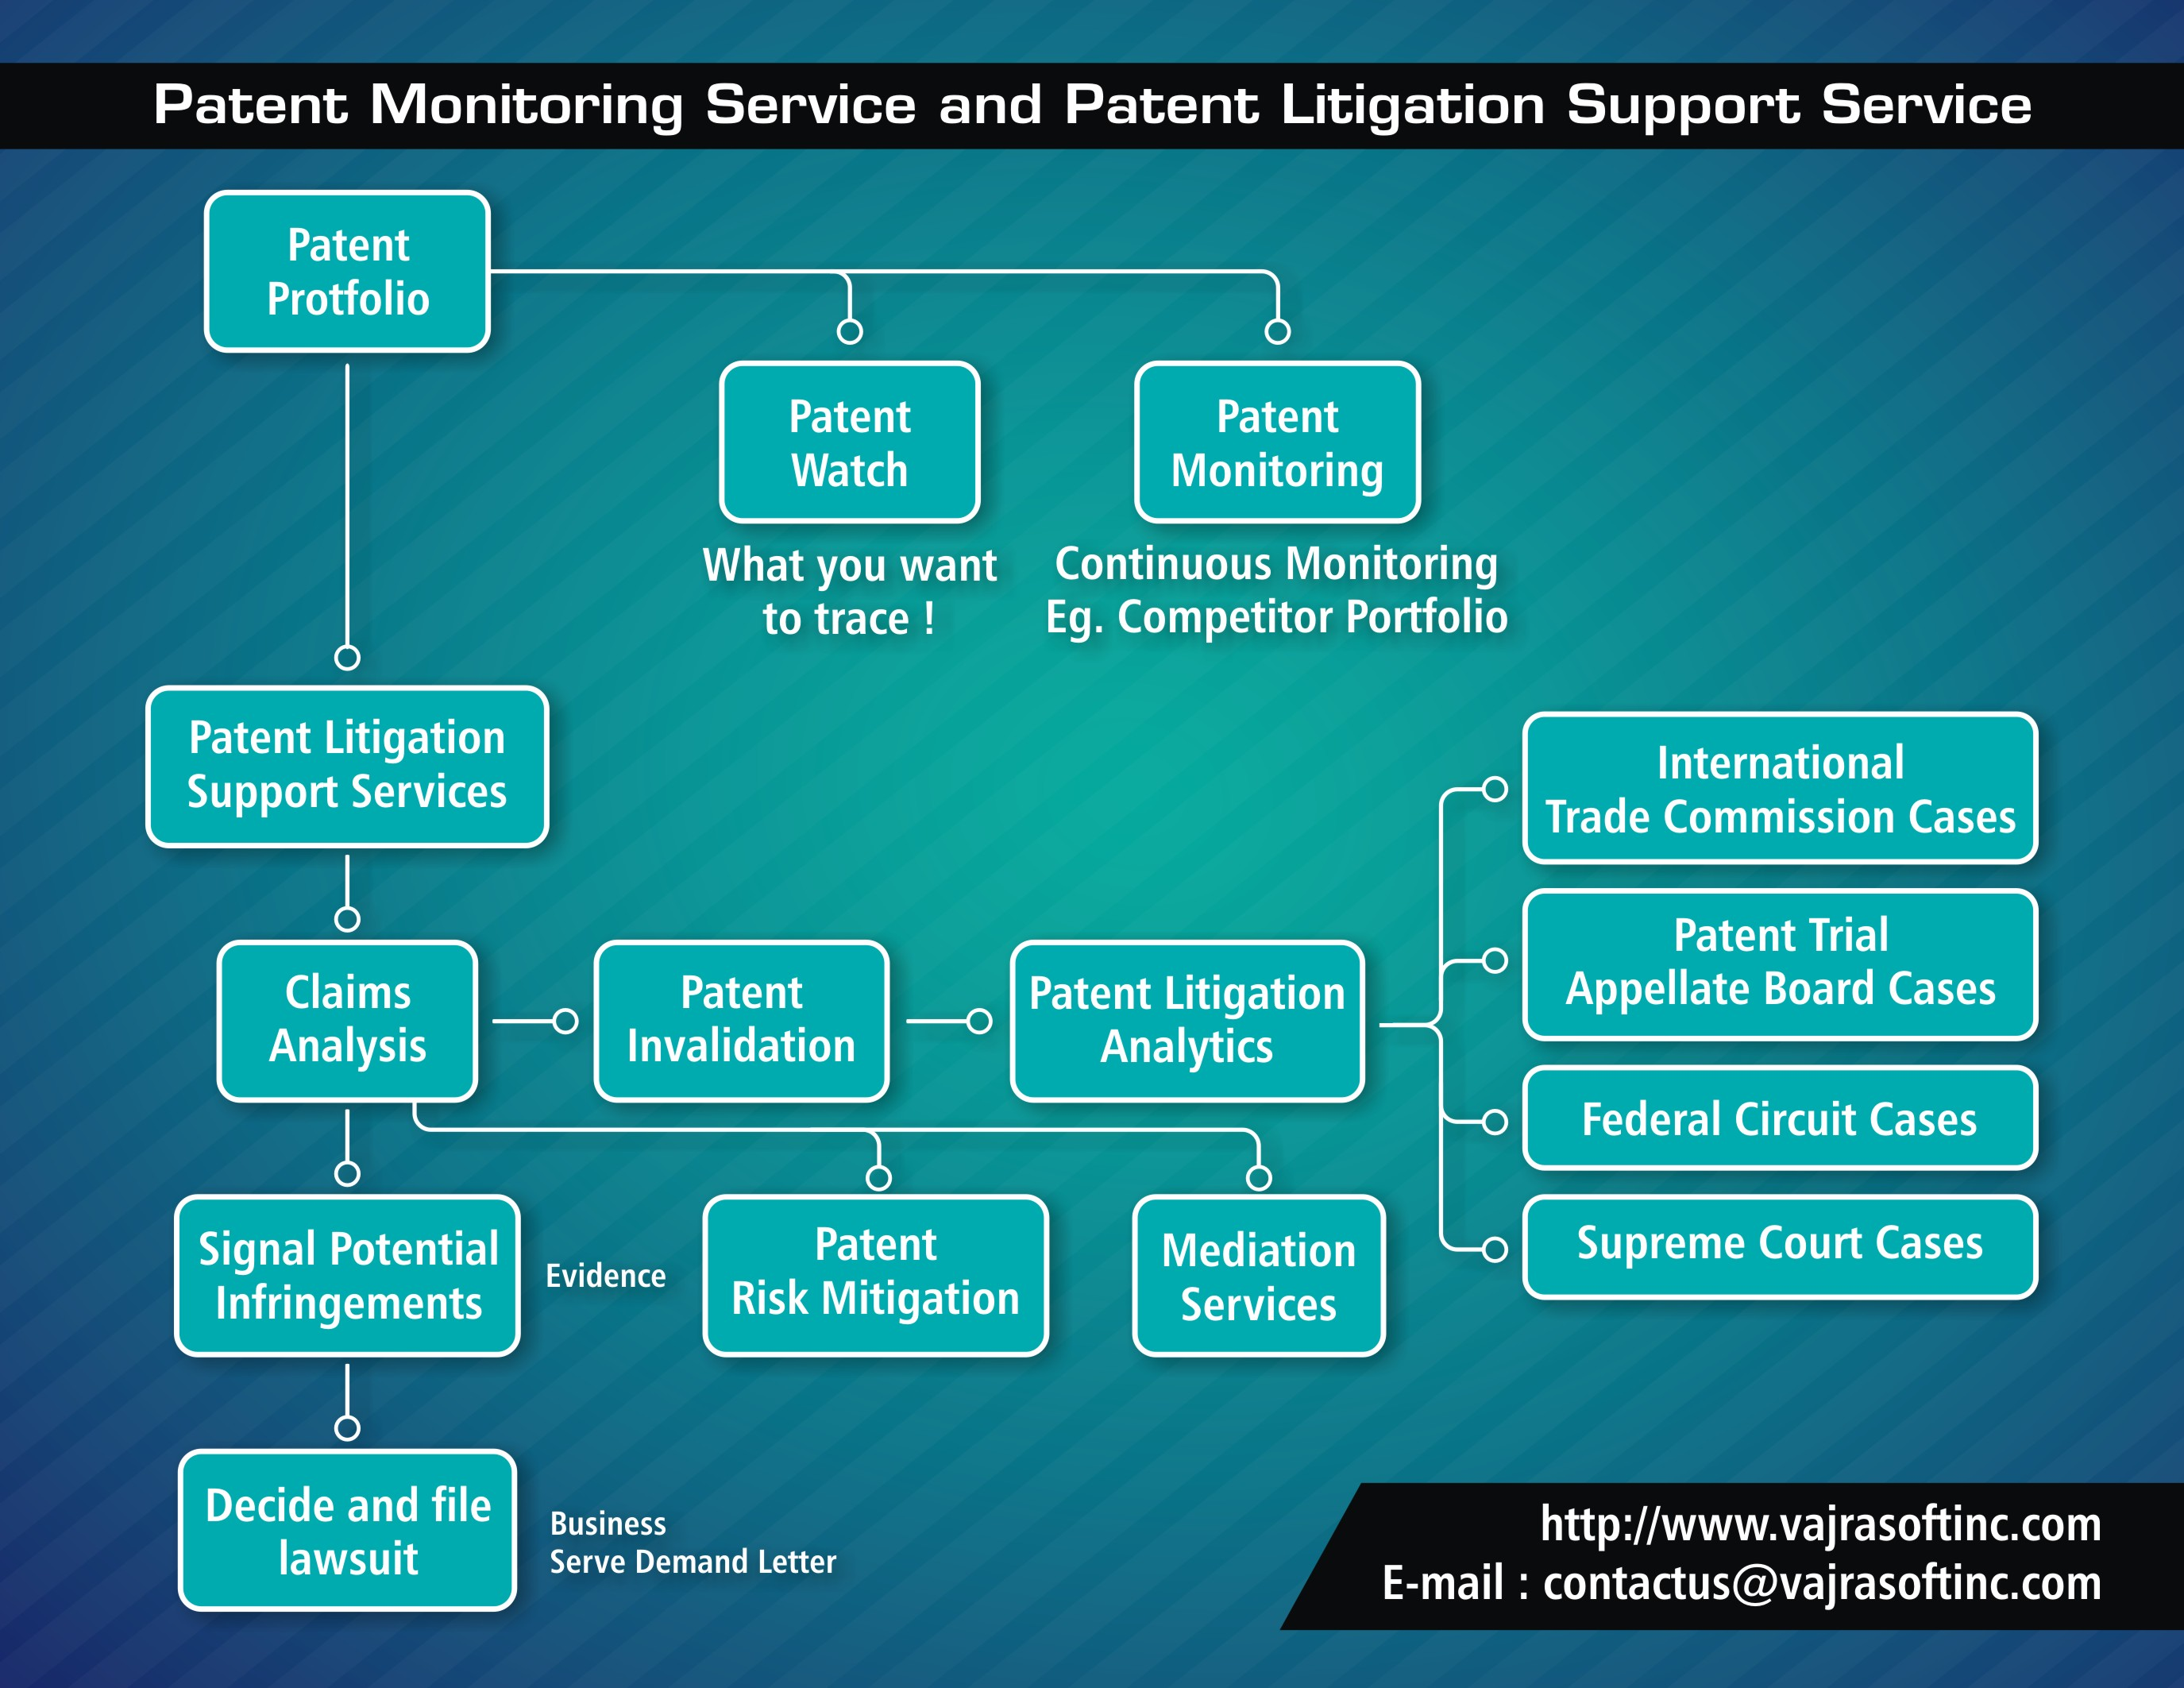 Patent Monitoring and Patent Litigation Support Services